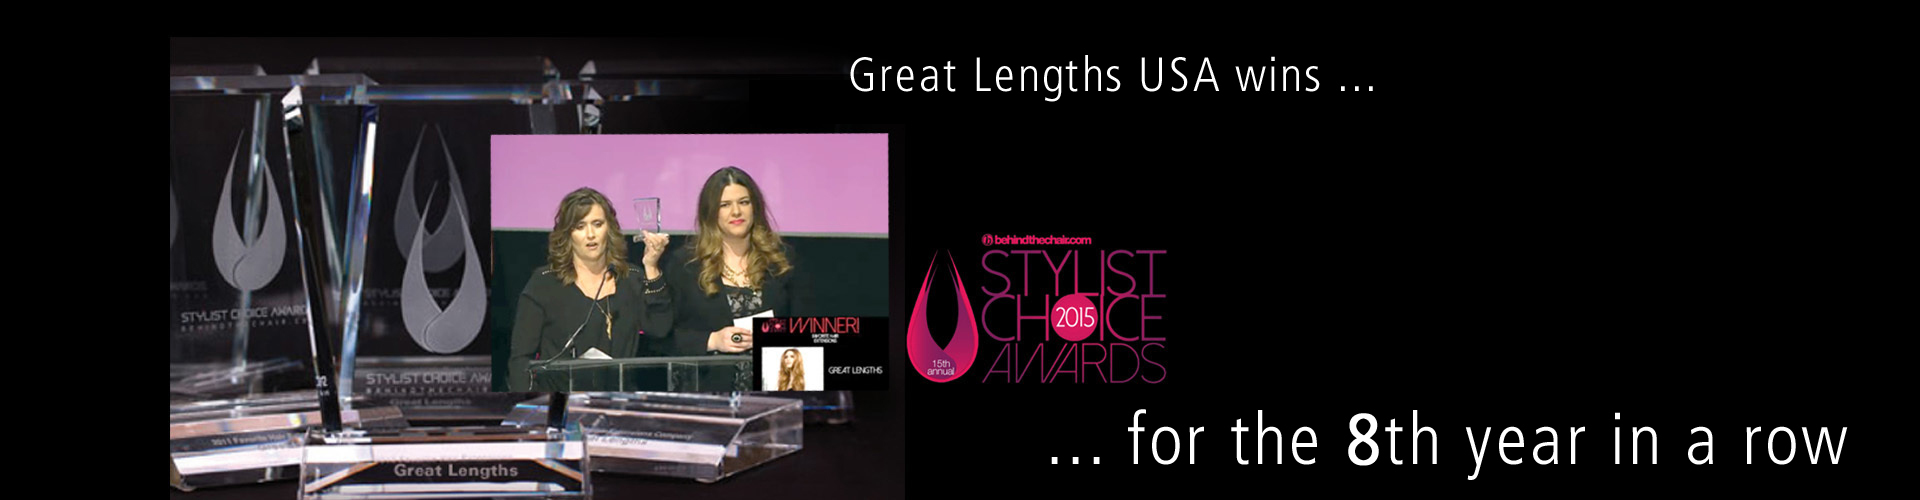 Stylist Choice Awards 2015 - Great Lengths USA gewinnt zum 8. Mal in Folge (© Great Lengths)